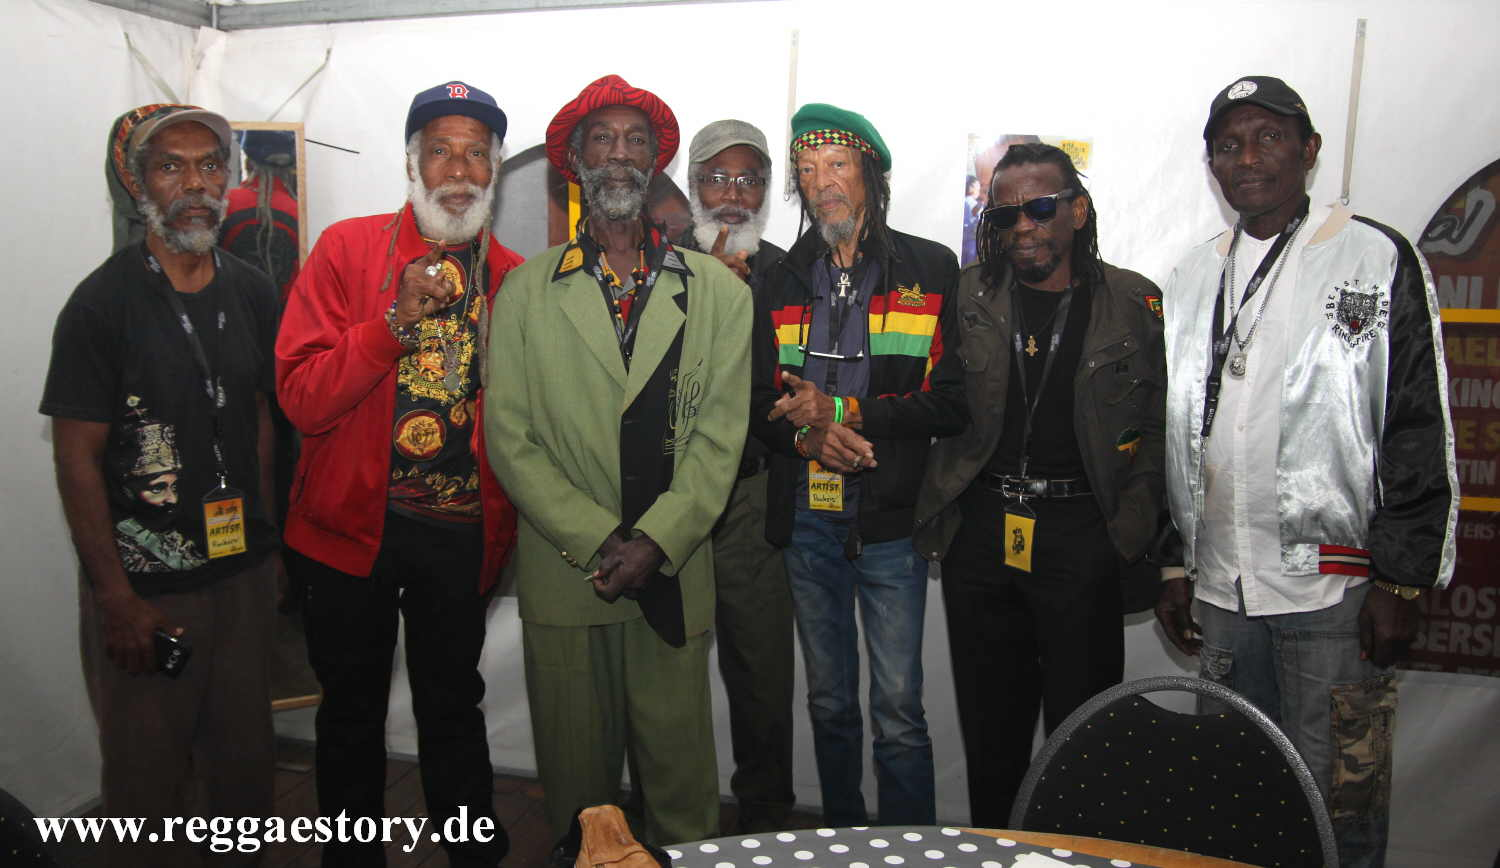 The Rockers 2019 - Reggae Jam